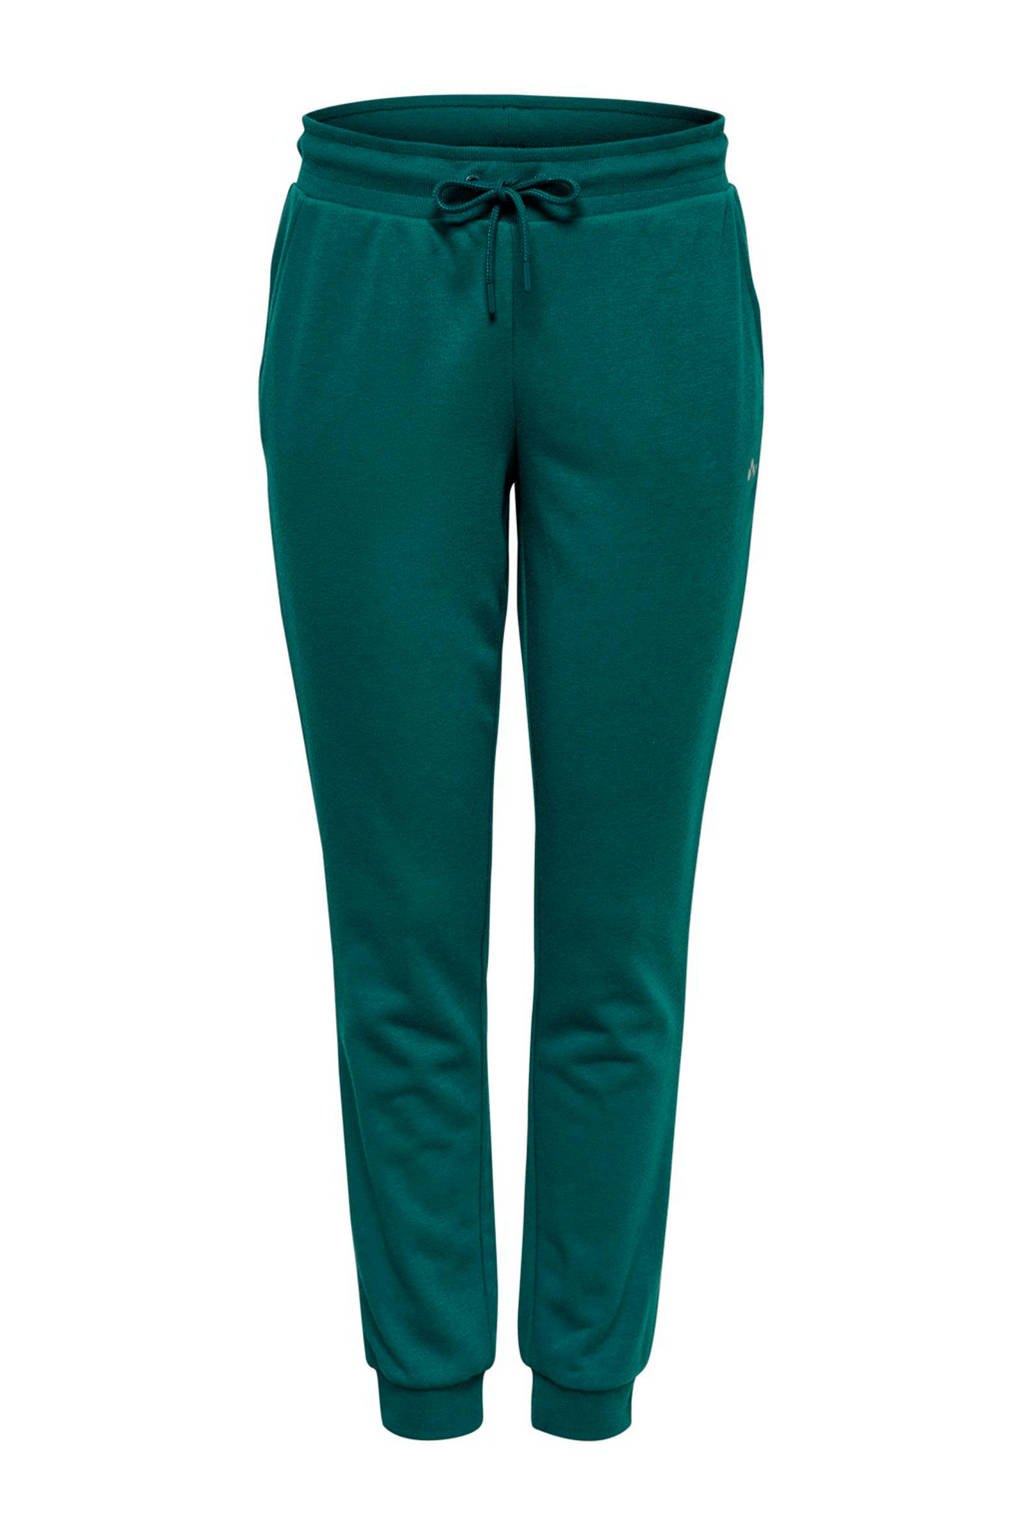 ONLY PLAY sportbroek turquoise, Turquoise